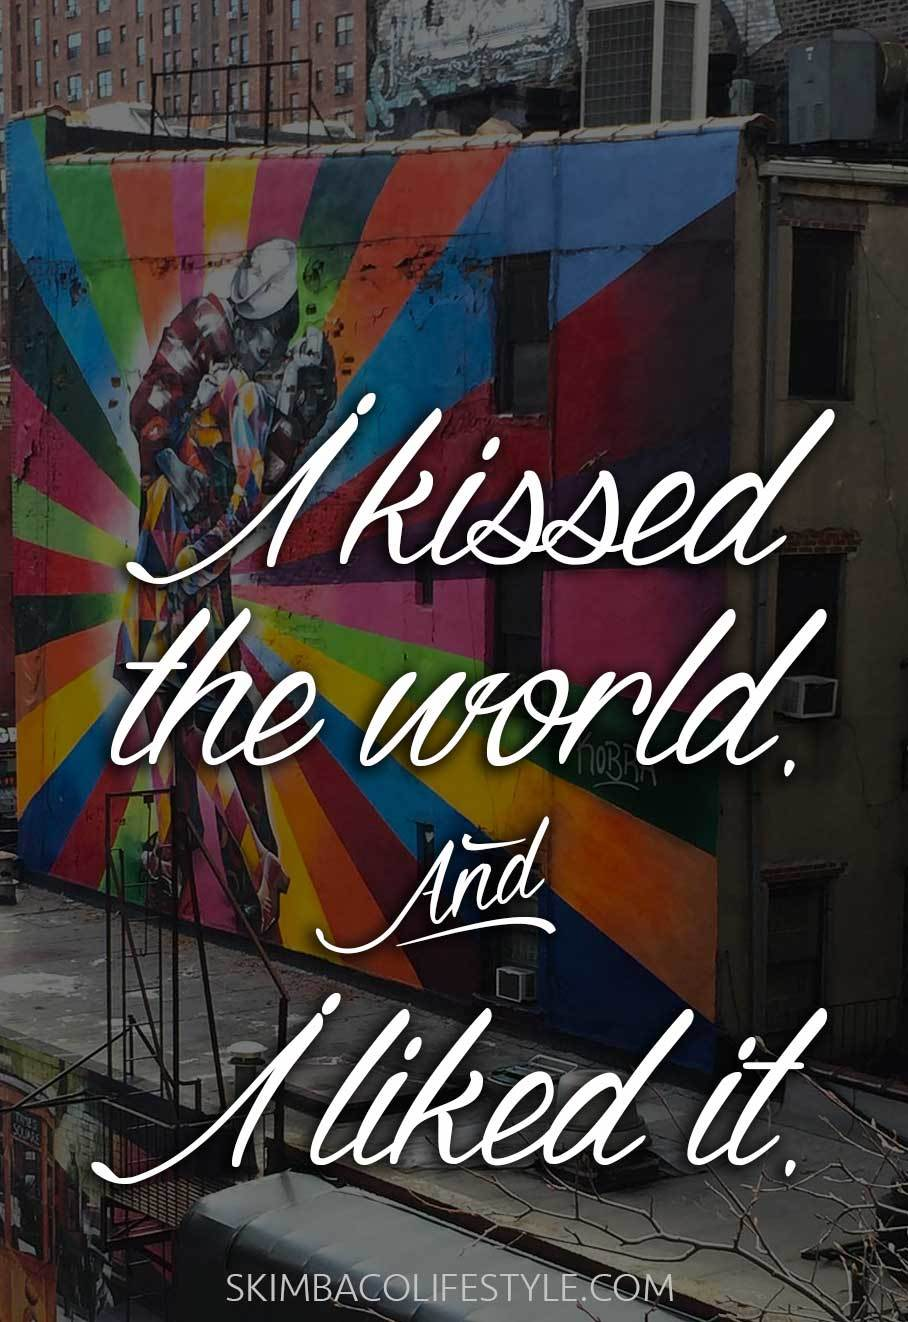 I kissed the world. And I liked it.